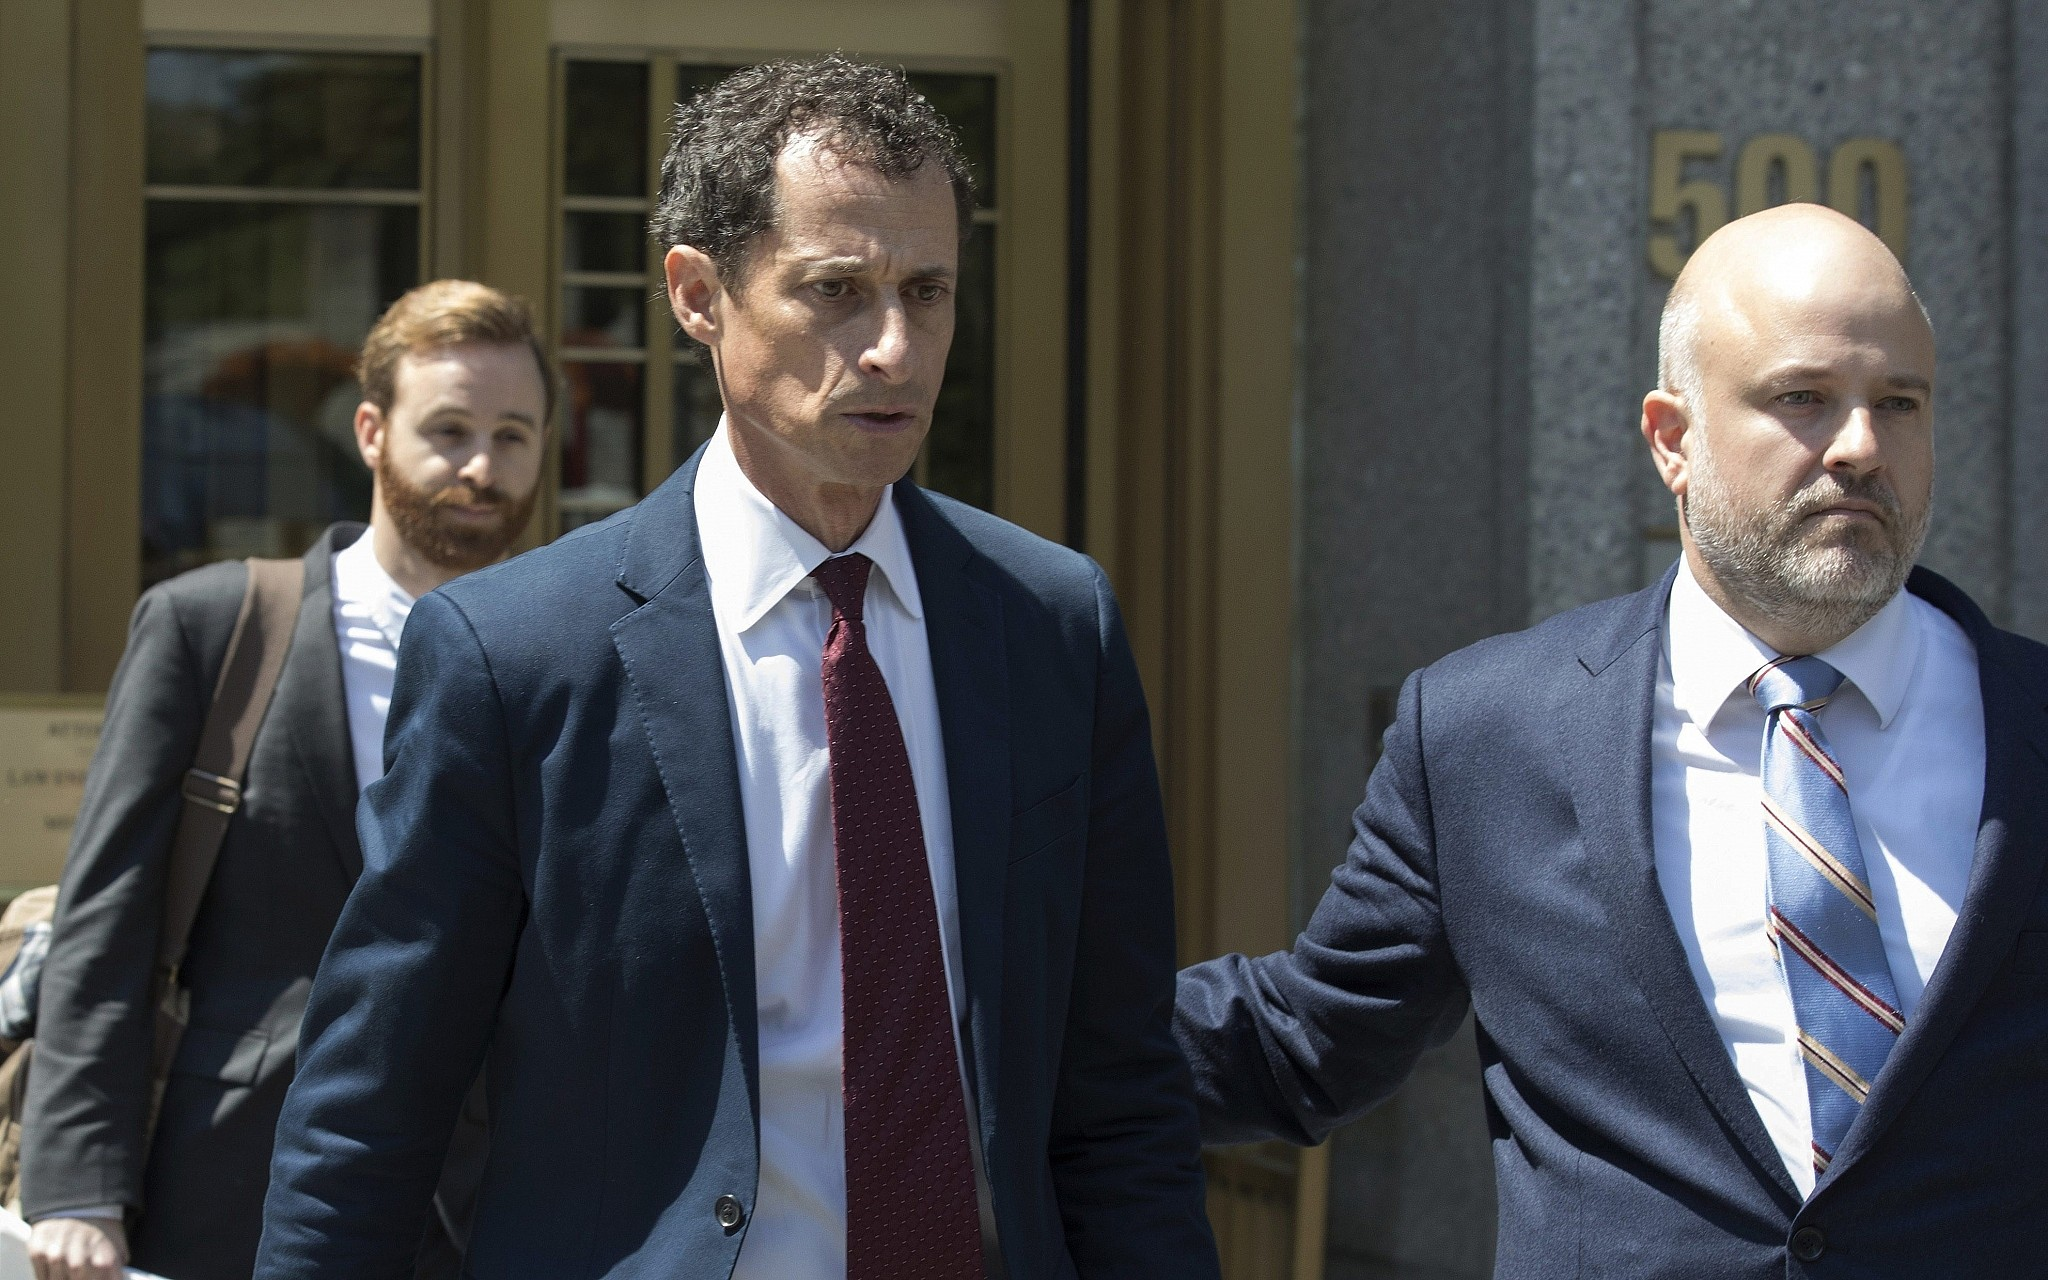 Tearful Anthony Weiner Gets 21 Months for Sexting With Minor